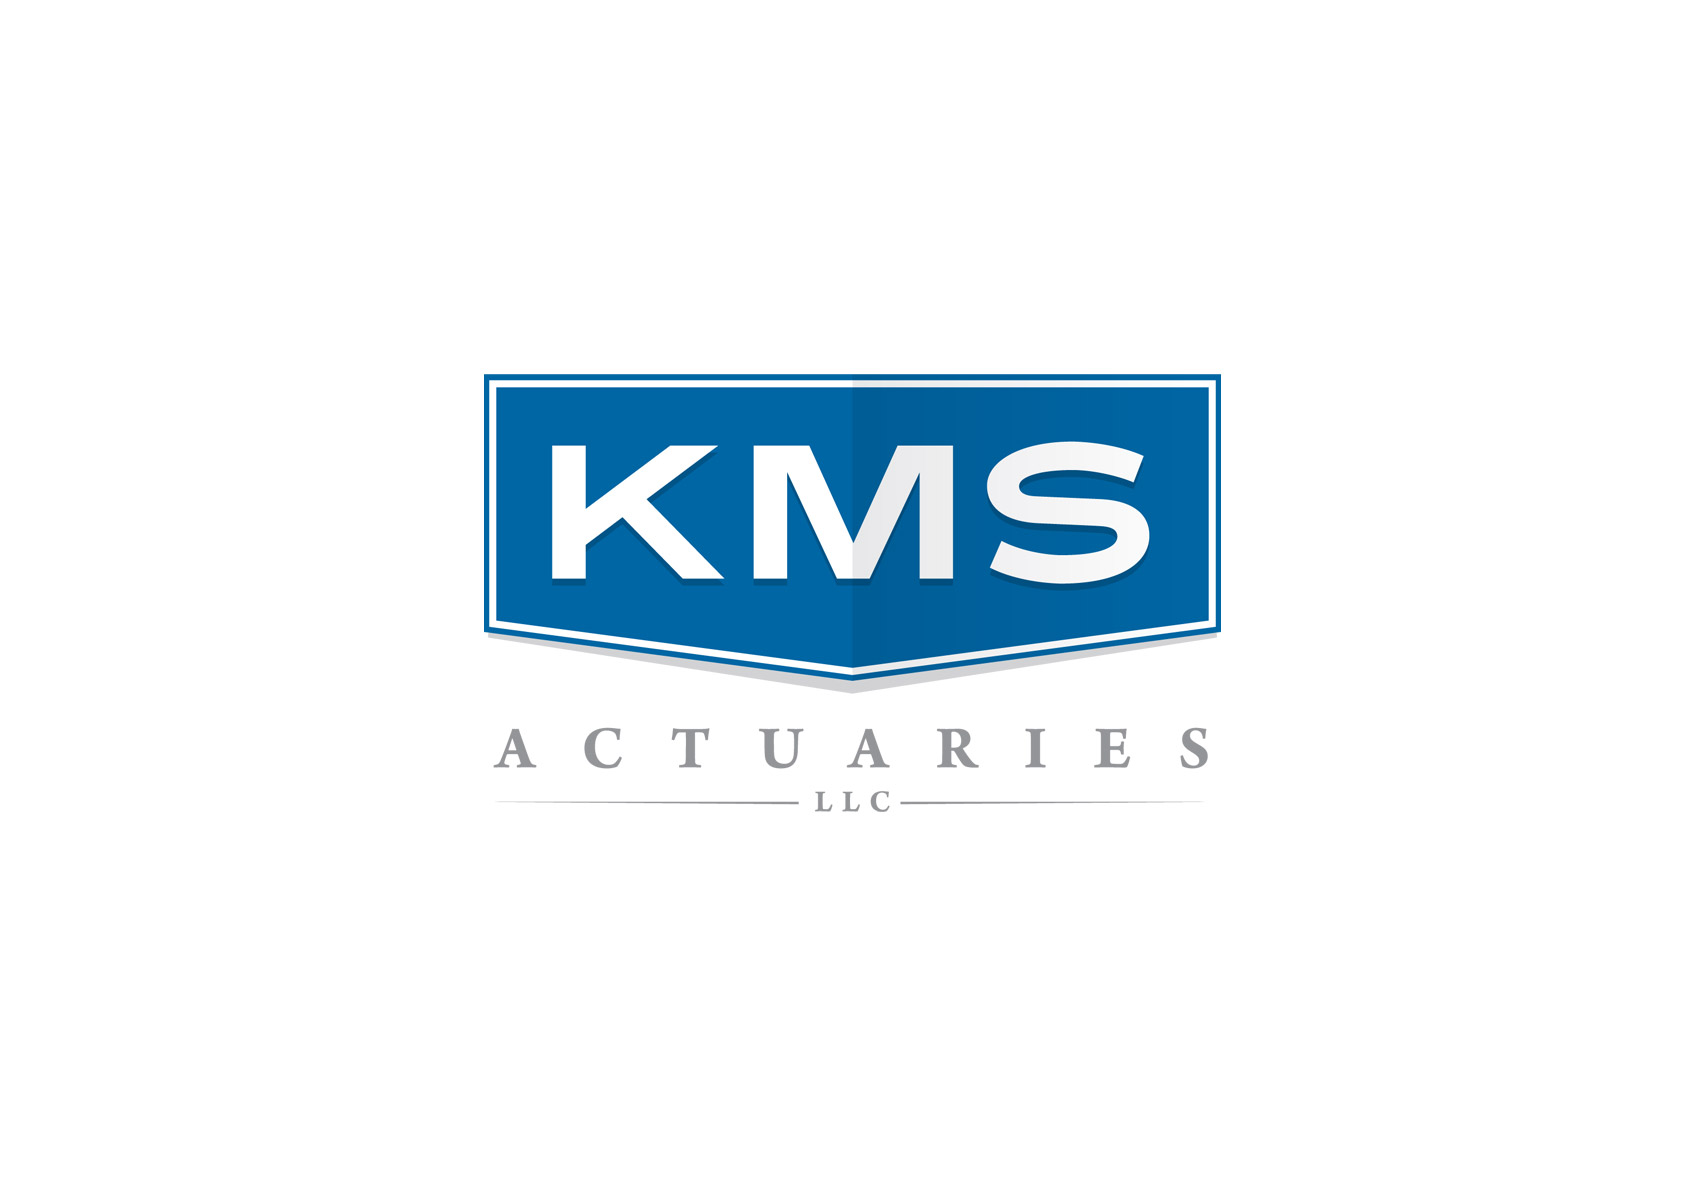 KMS Actuaries